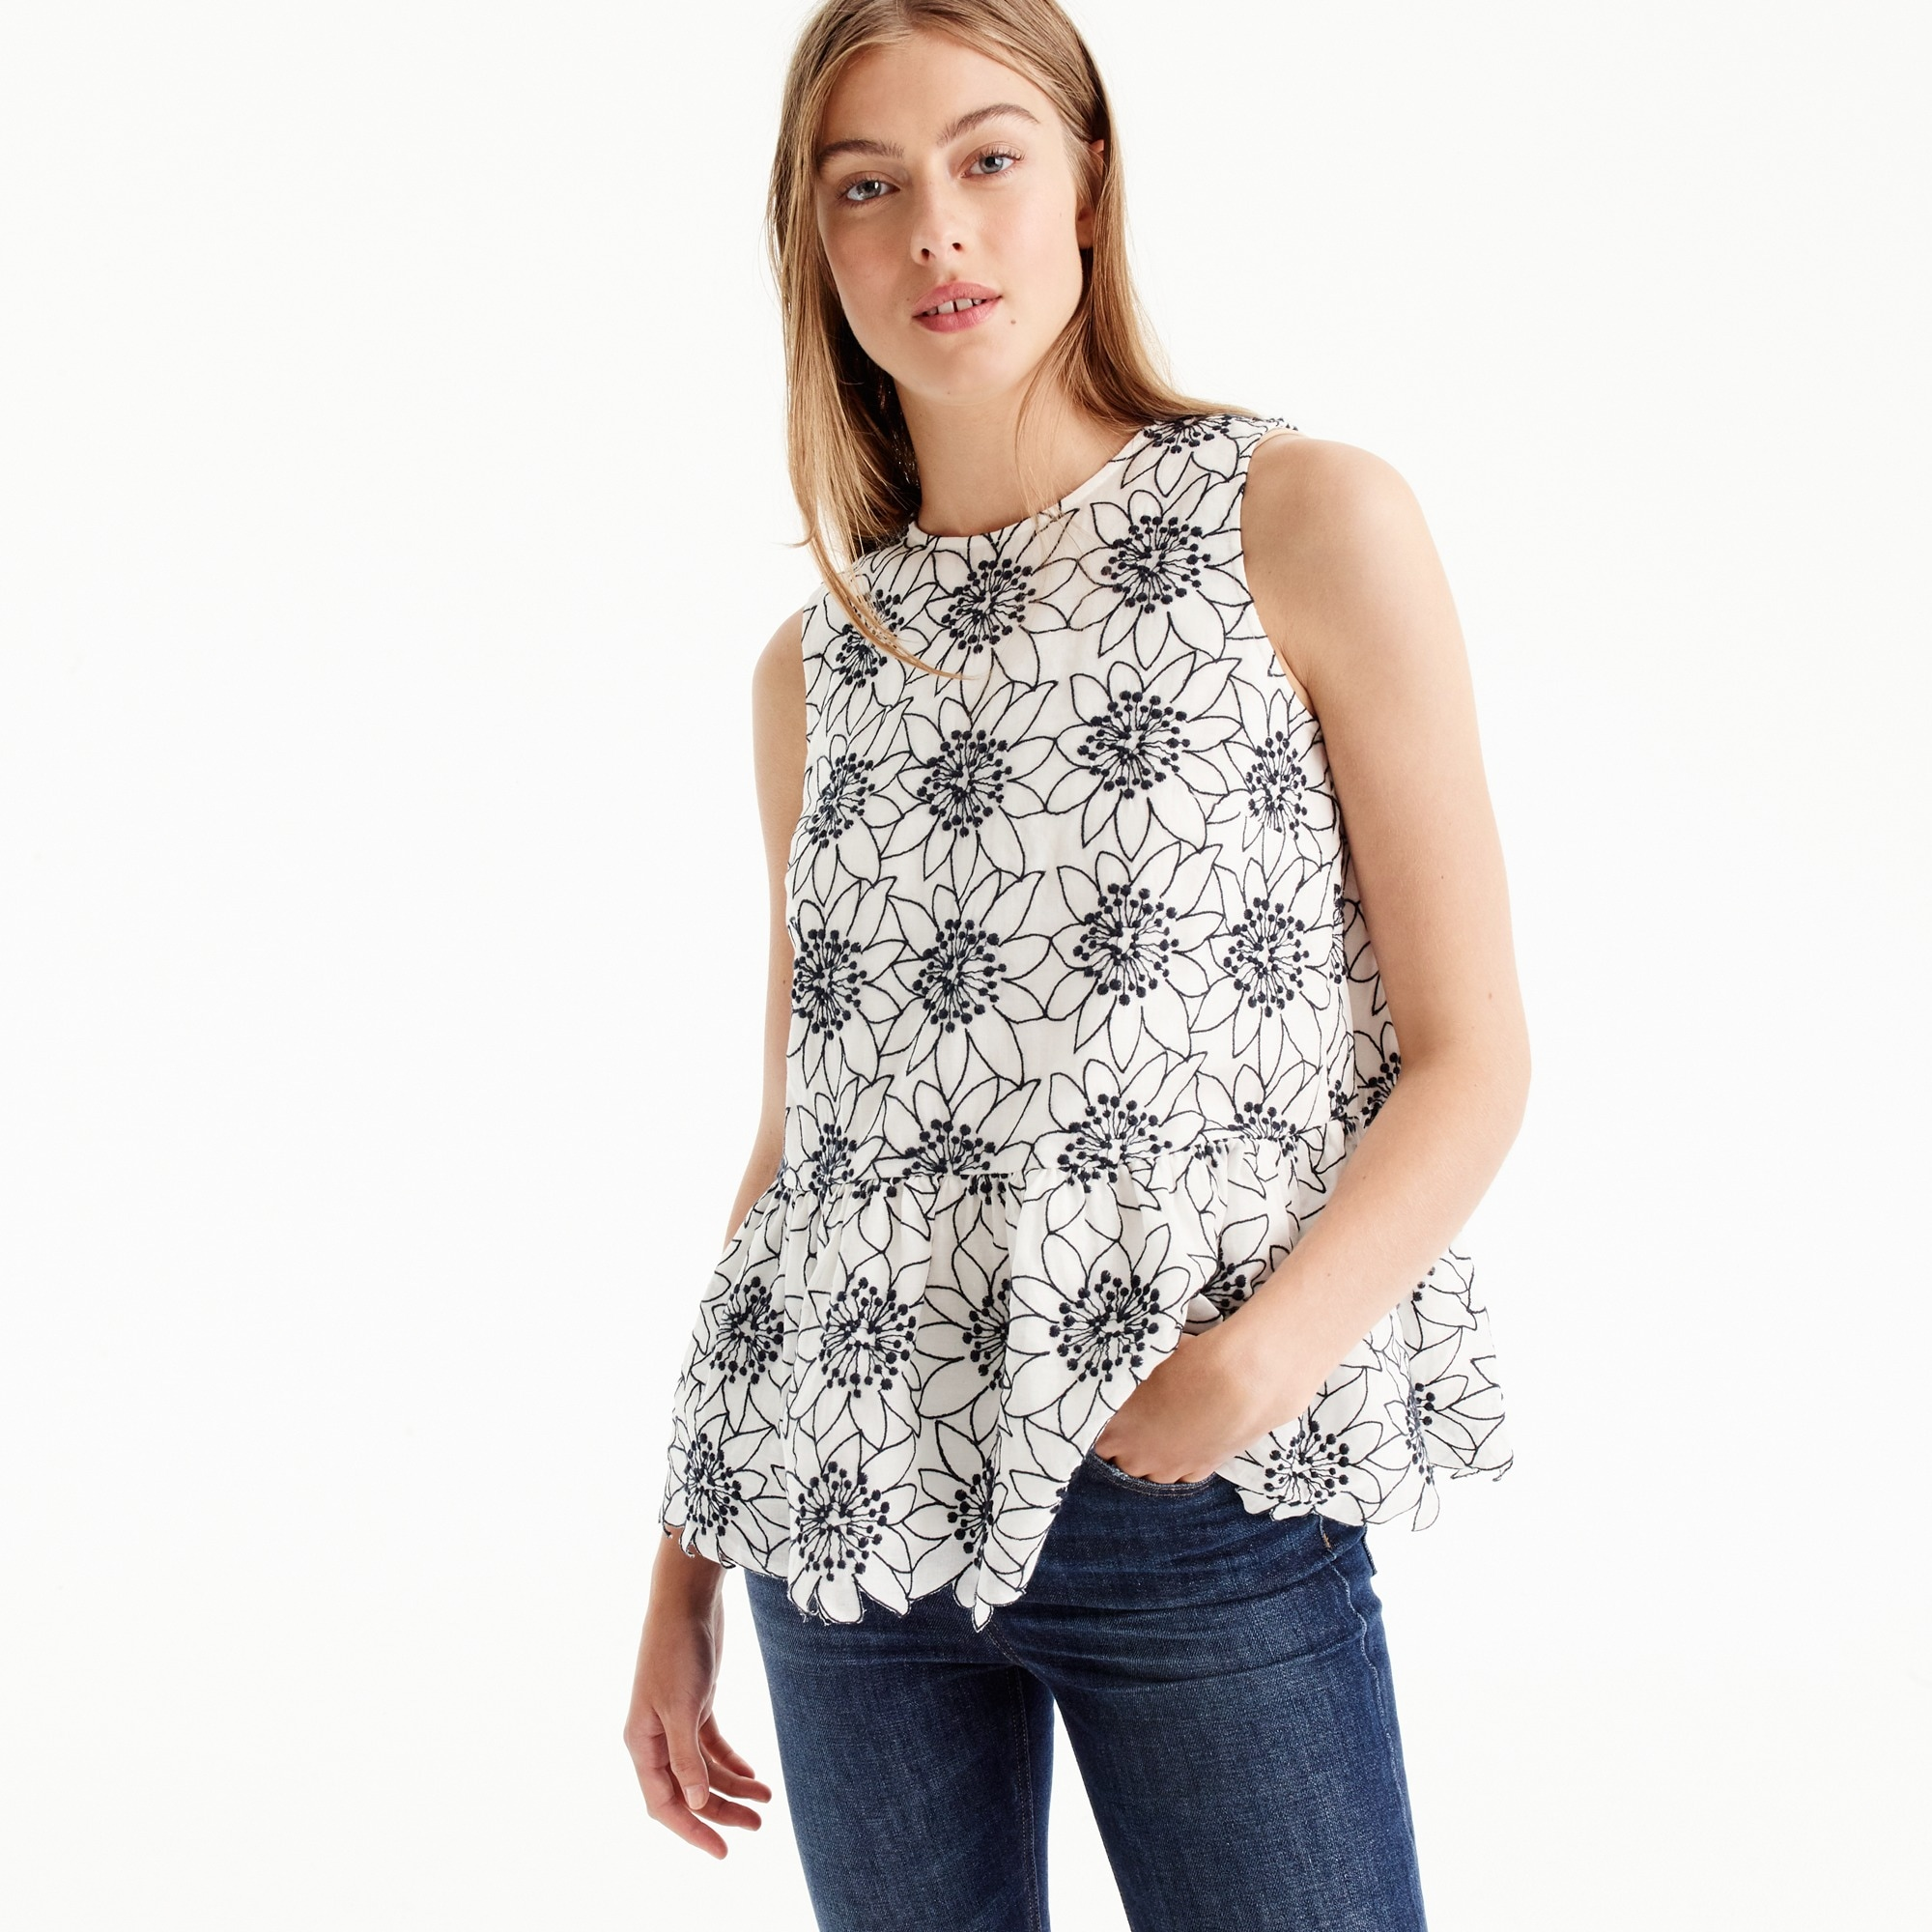 embroidered floral top : women tops & blouses